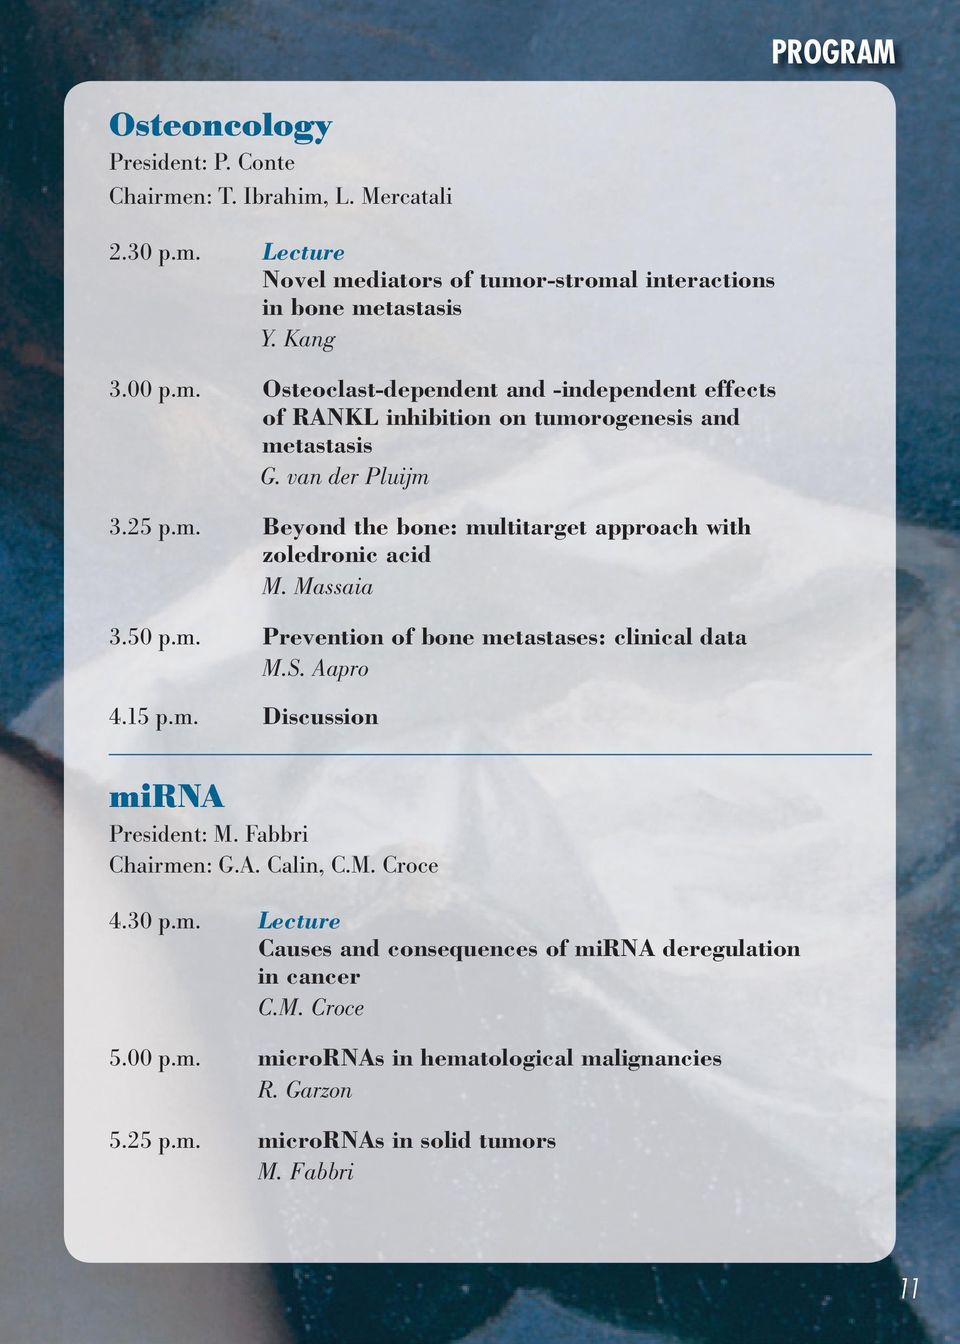 Fabbri Chairmen: G.A. Calin, C.M. Croce 4.30 p.m. Lecture Causes and consequences of mirna deregulation in cancer C.M. Croce 5.00 p.m. micrornas in hematological malignancies R.